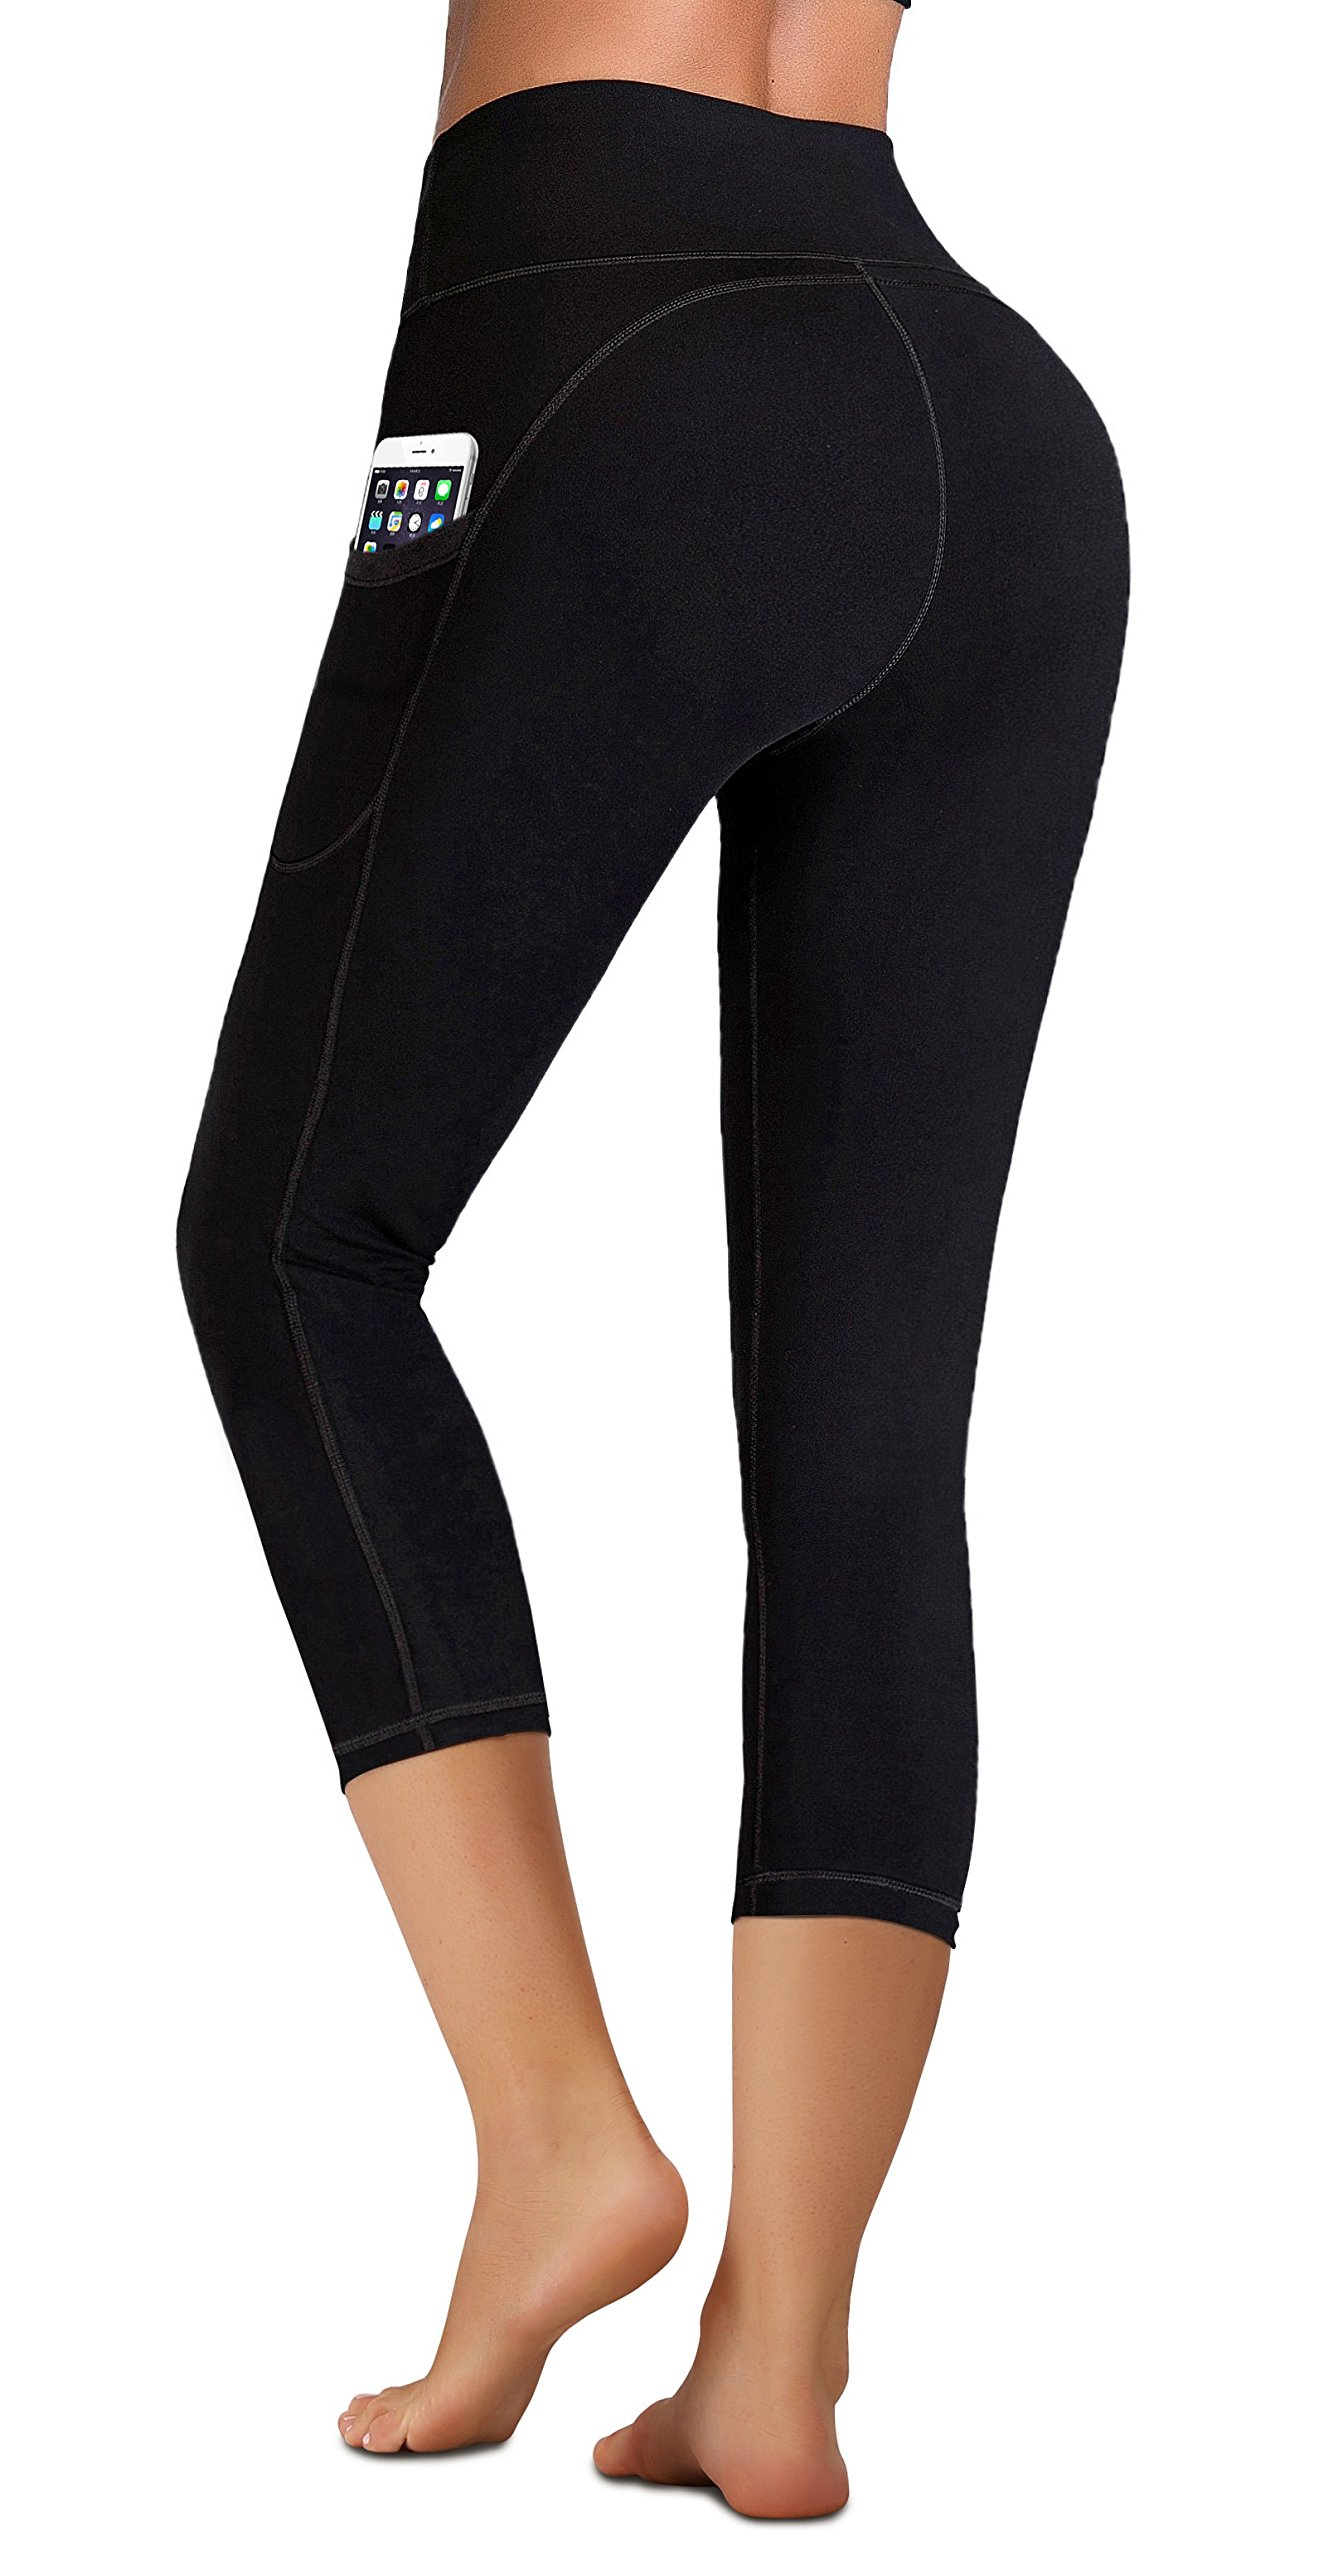 b8d8ea4c73 IUGA High Waist Yoga Pants with Pockets, Tummy Control, Workout Pants for  Women 4